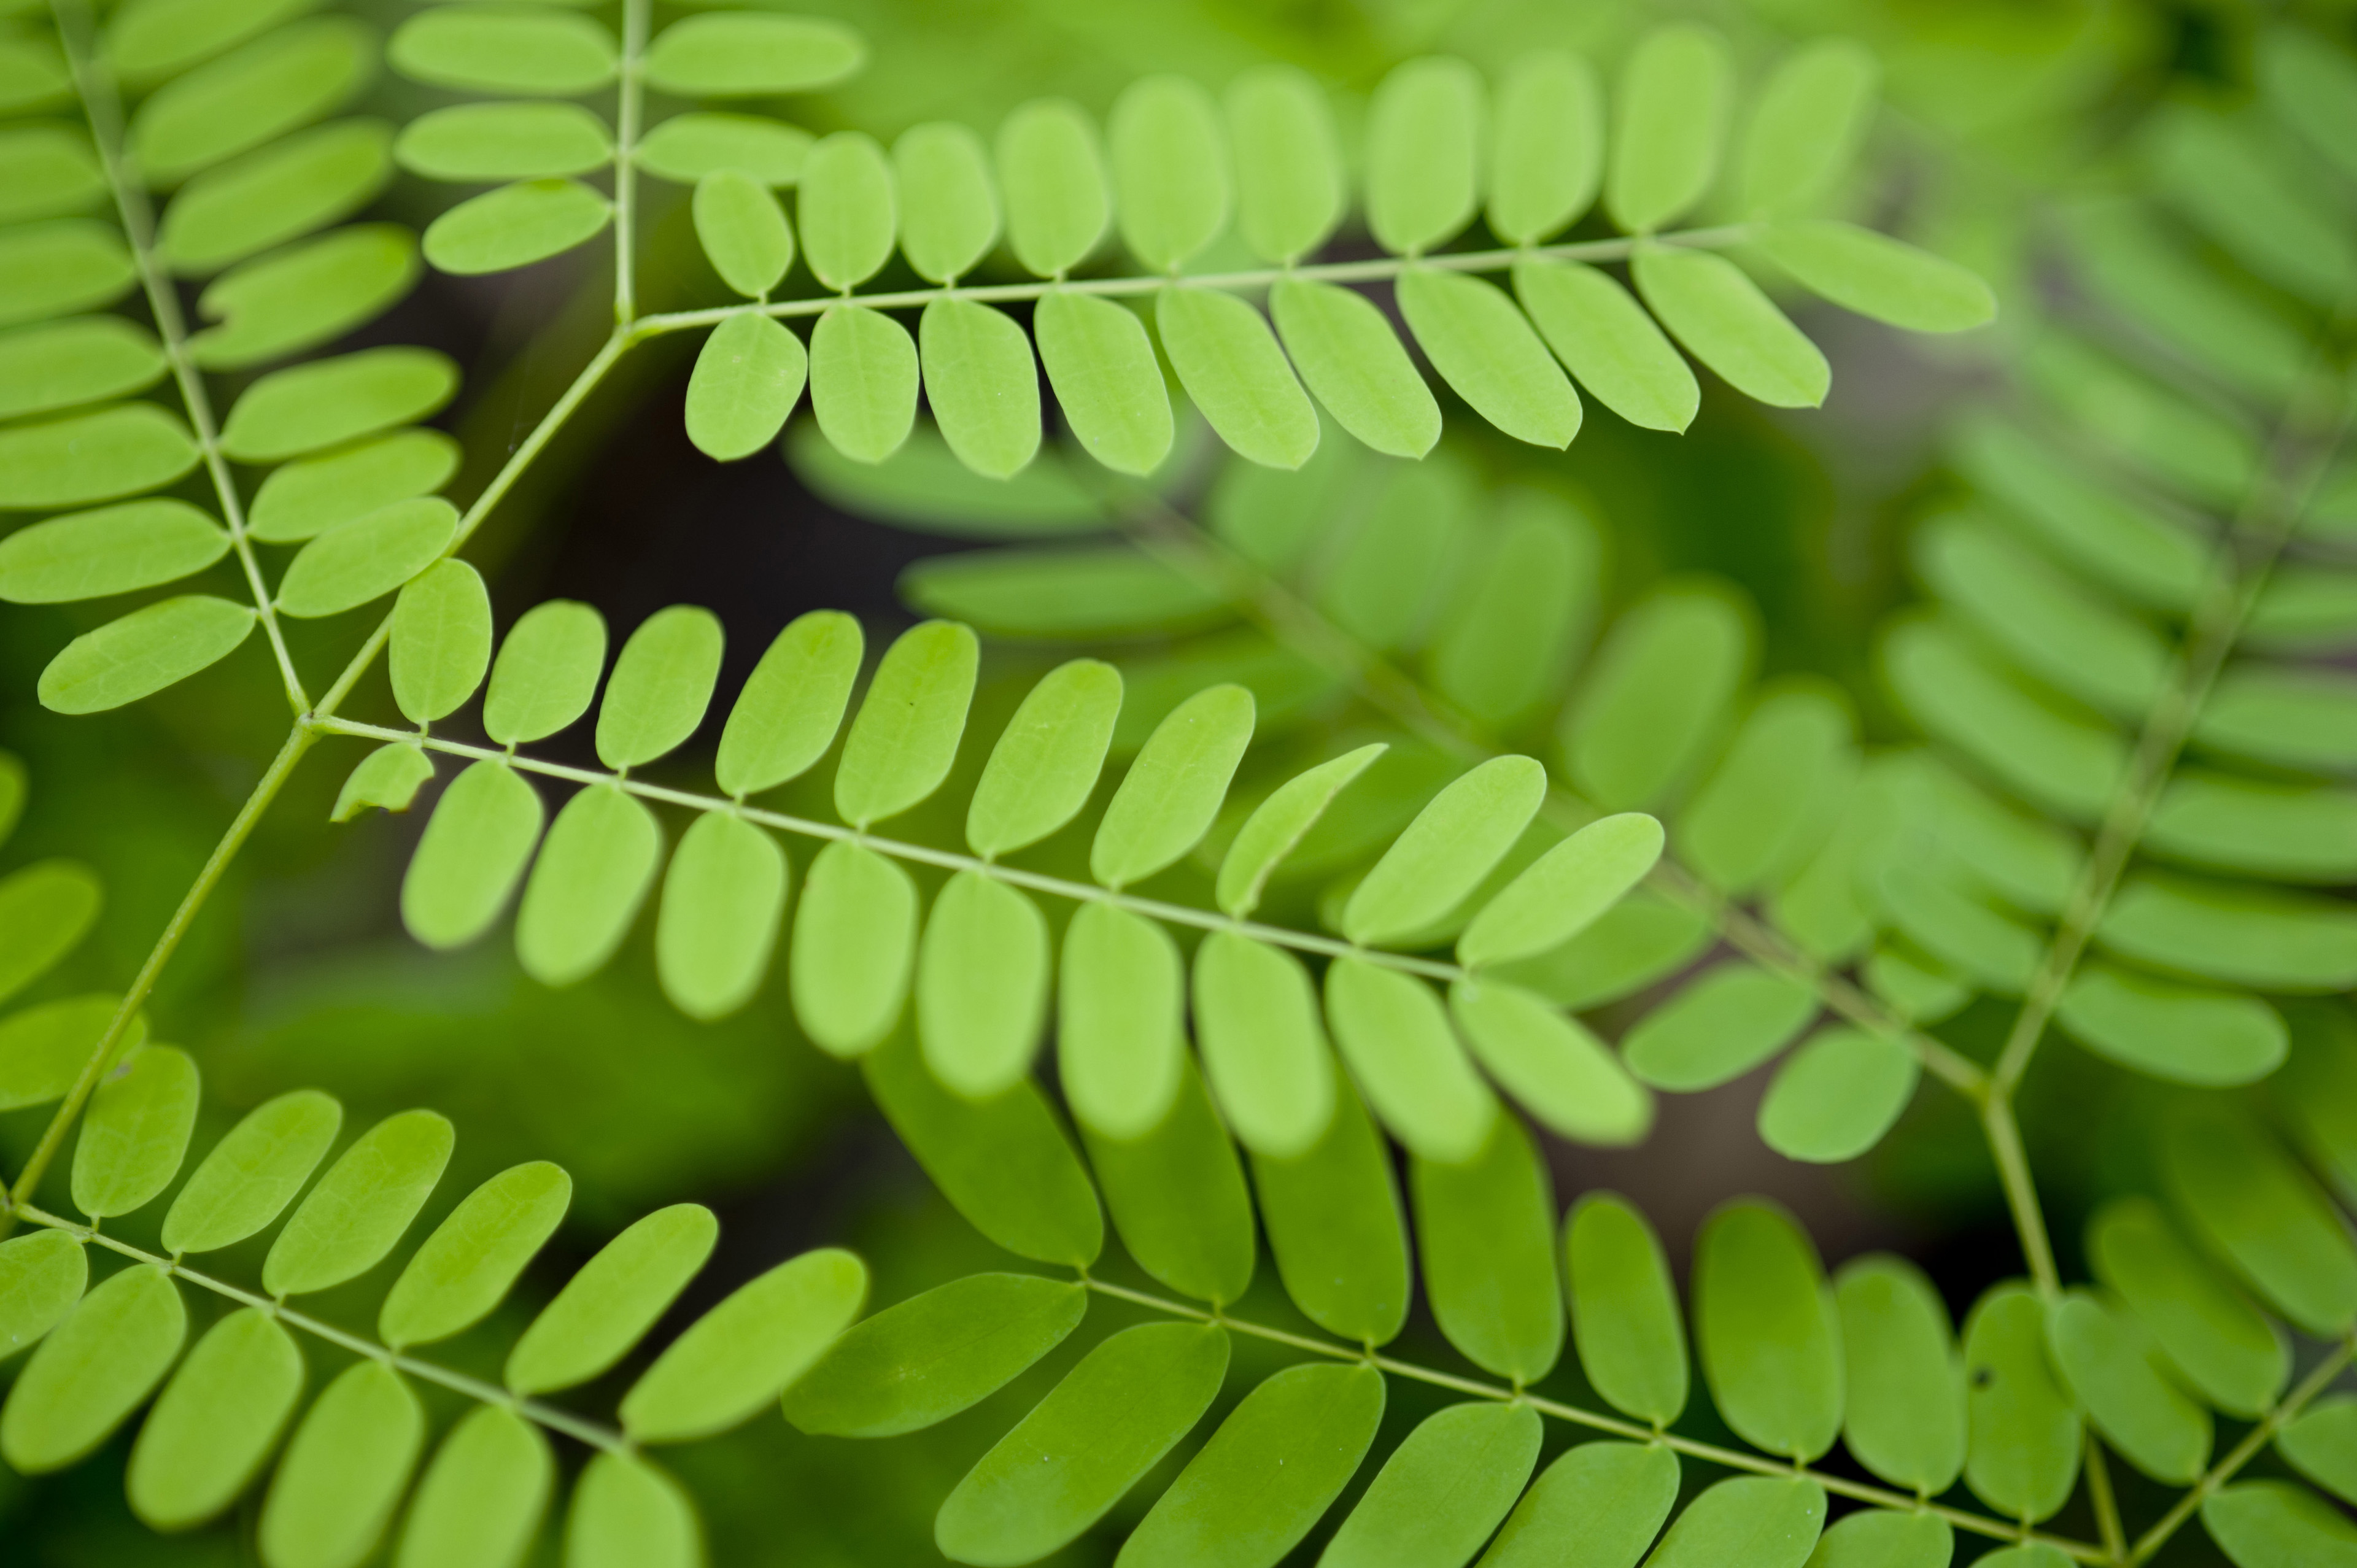 a background of delicate green leaves on a fern type plant